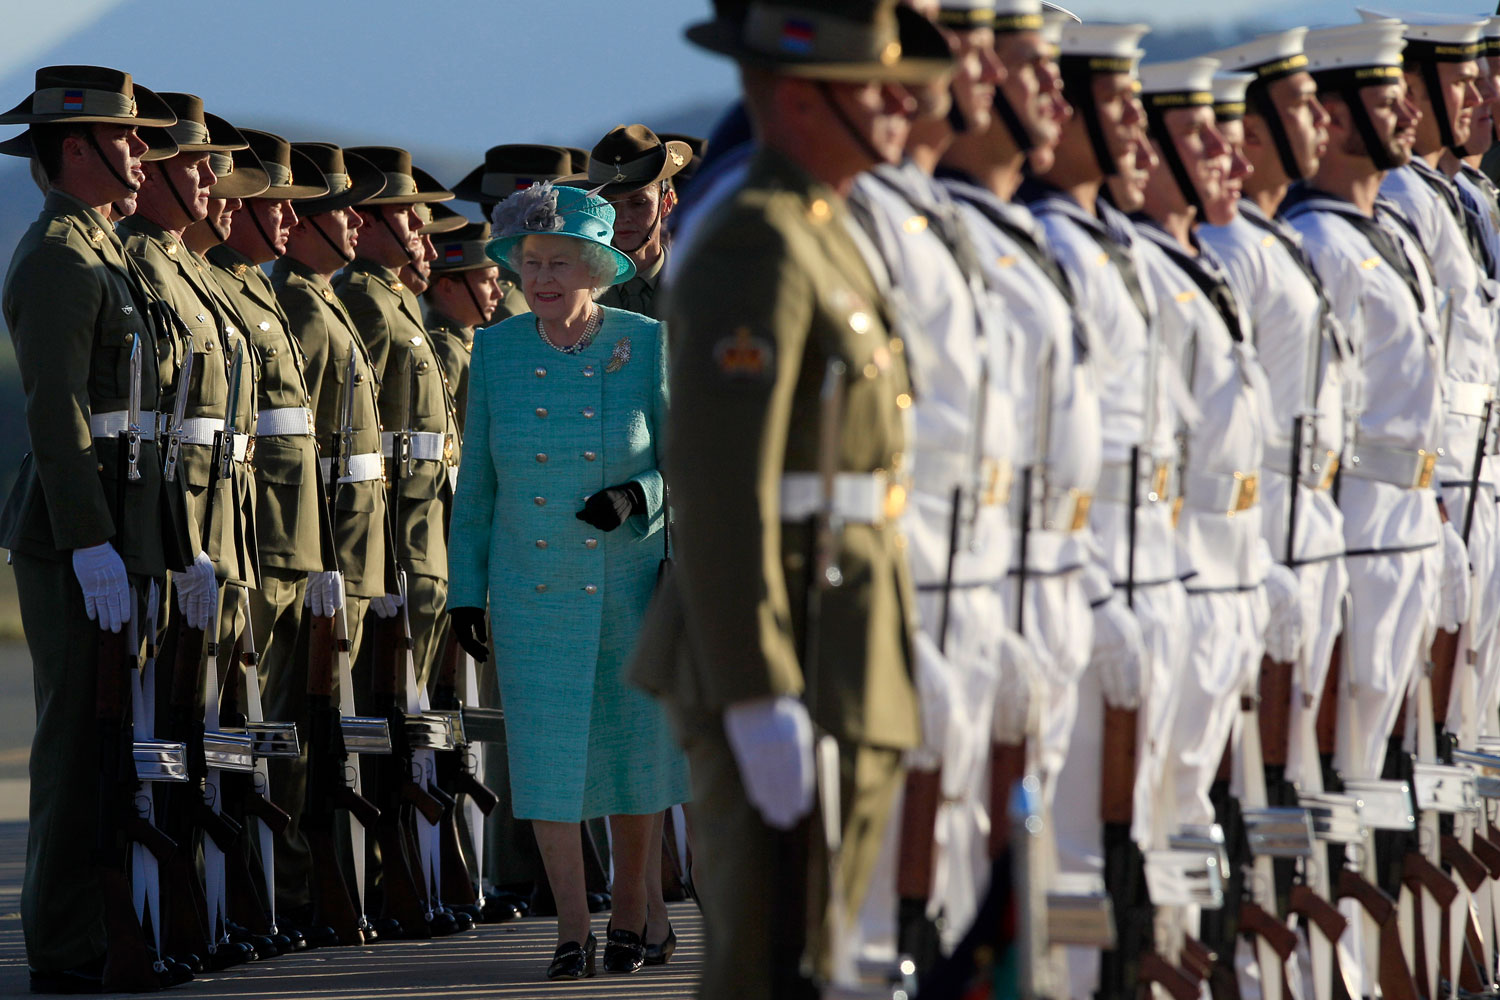 October 19, 2011. Queen Elizabeth II inspects an honor guard after her arrival at Fairbairn airforce base in Canberra. The Queen is on a tour to Australia, her first visit since 2006.